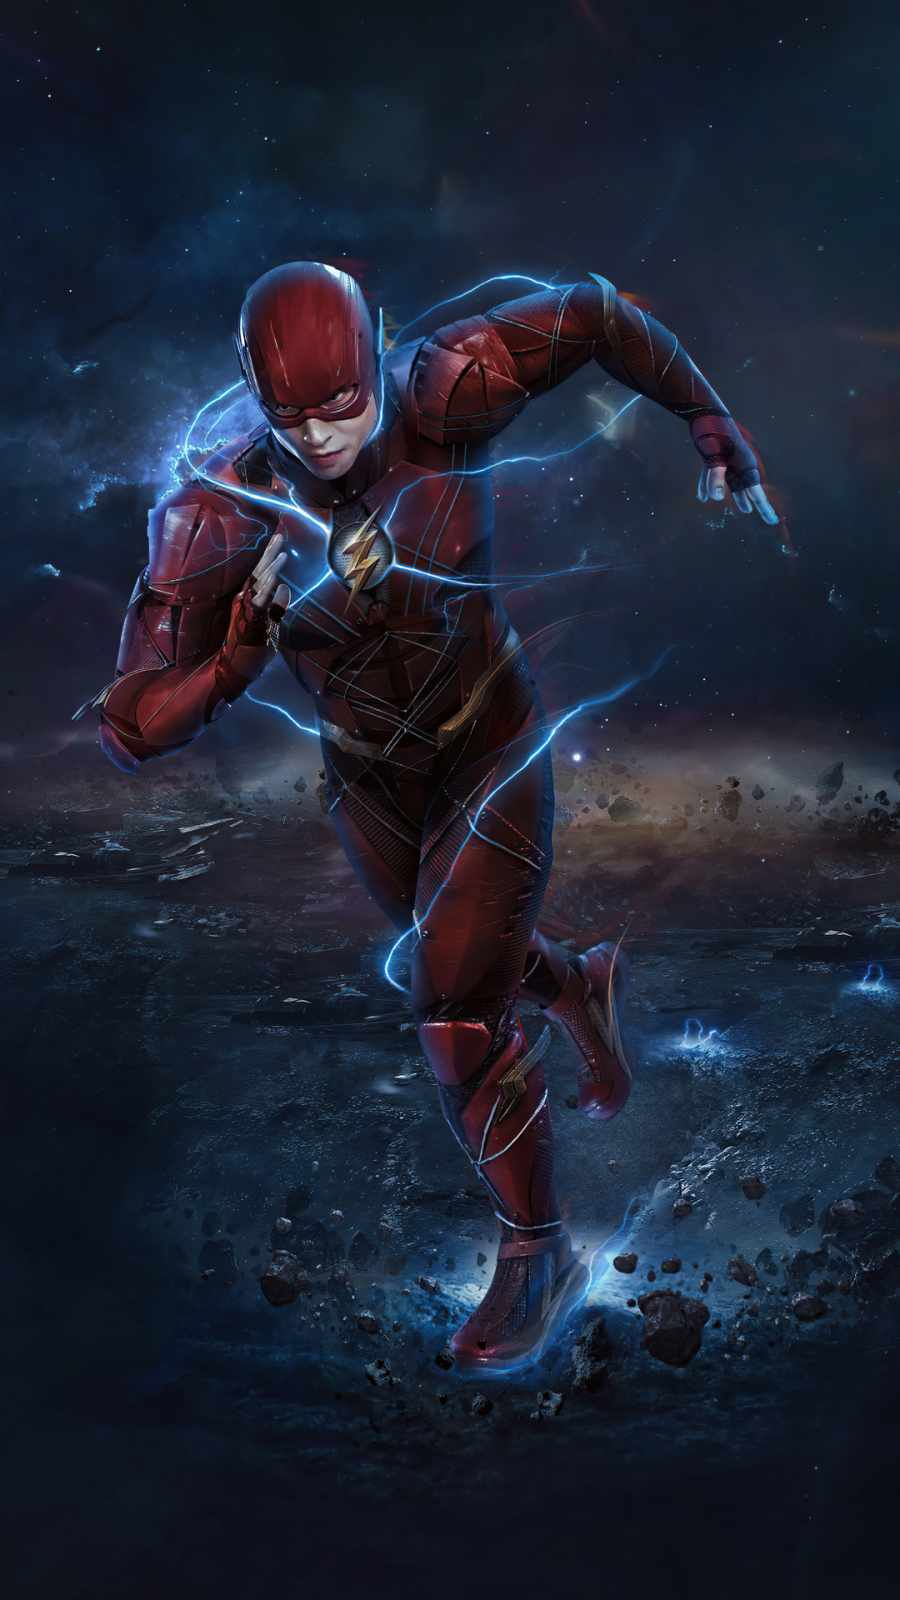 Flash Running Zack Synder Cut